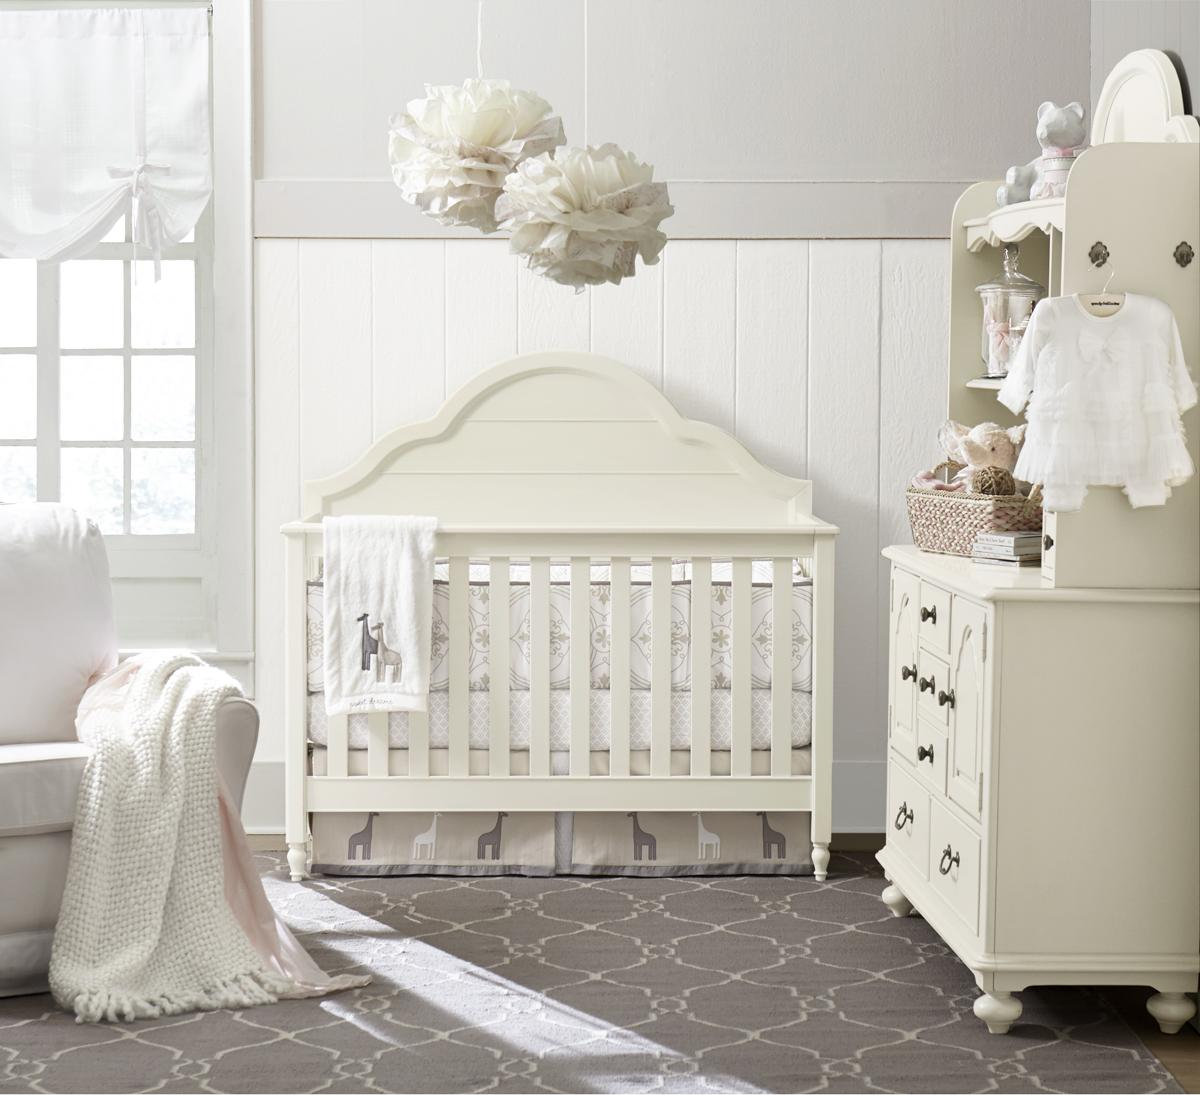 Legacy Classic Kids Inspirations by Wendy Bellissimo Crib Bedroom Group - Item Number: 3832 Crib Bedroom Group